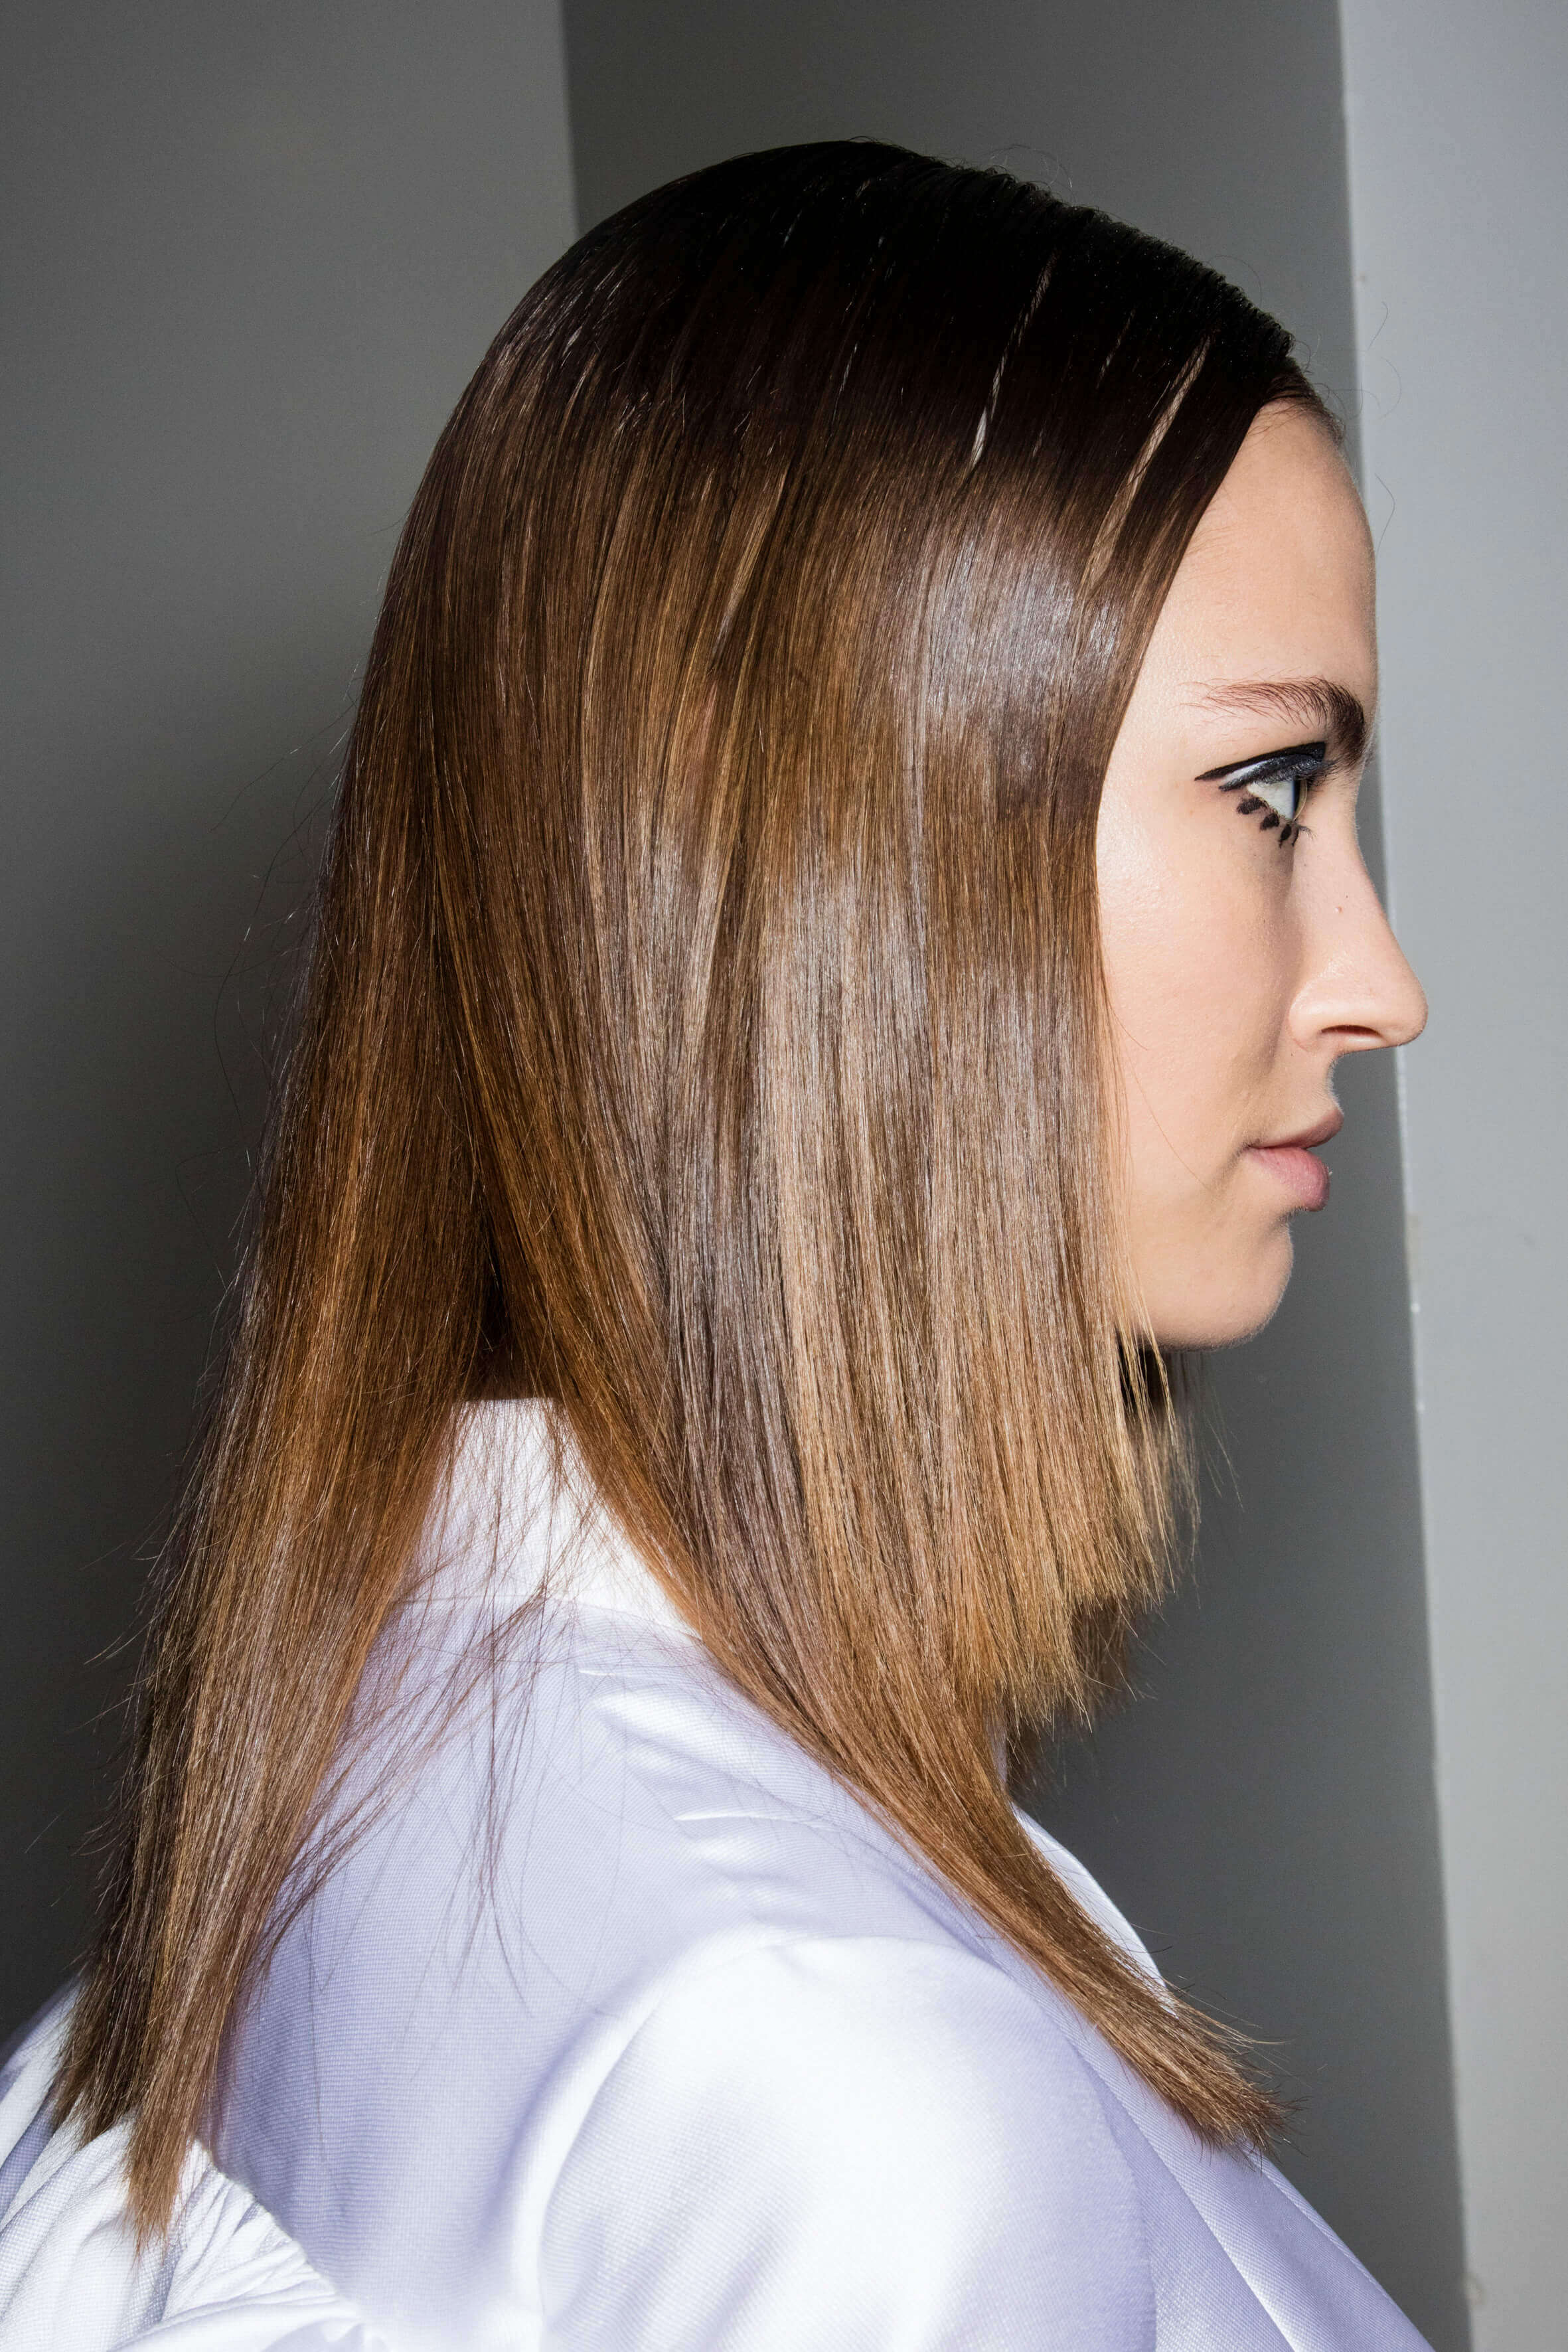 Flat Iron Hairstyles 8 Looks to Try This Holiday Season